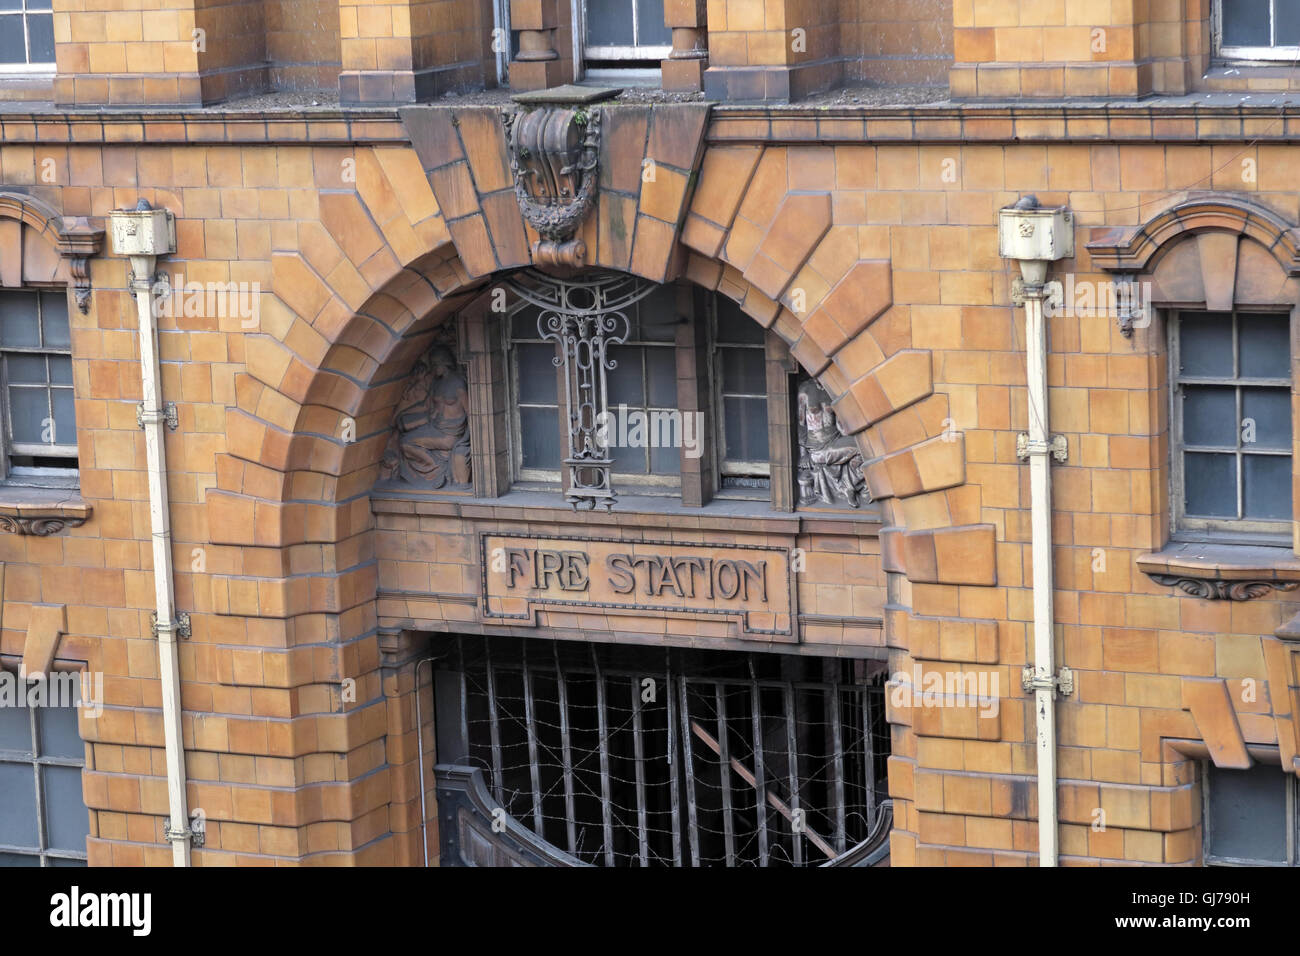 Entrance 50 London Road Fire Station, Manchester, M1 2PH - Stock Image